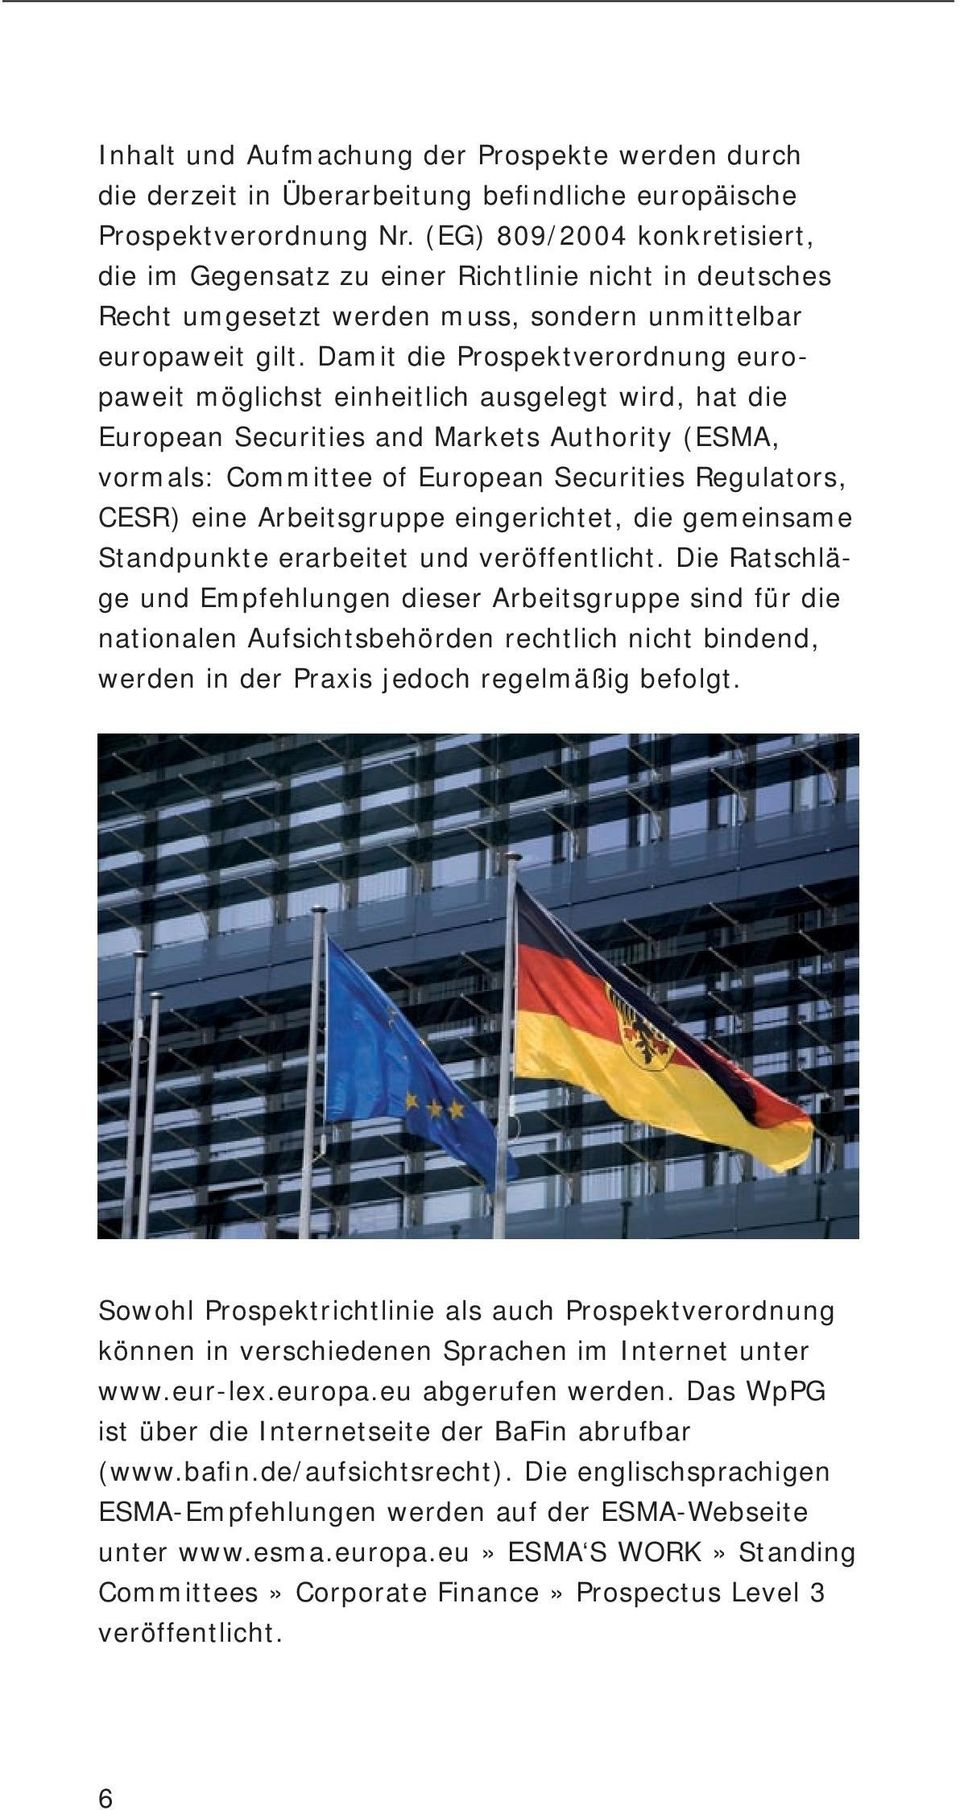 Damit die Prospektverordnung europaweit möglichst einheitlich ausgelegt wird, hat die European Securities and Markets Authority (ESMA, vormals: Committee of European Securities Regulators, CESR) eine